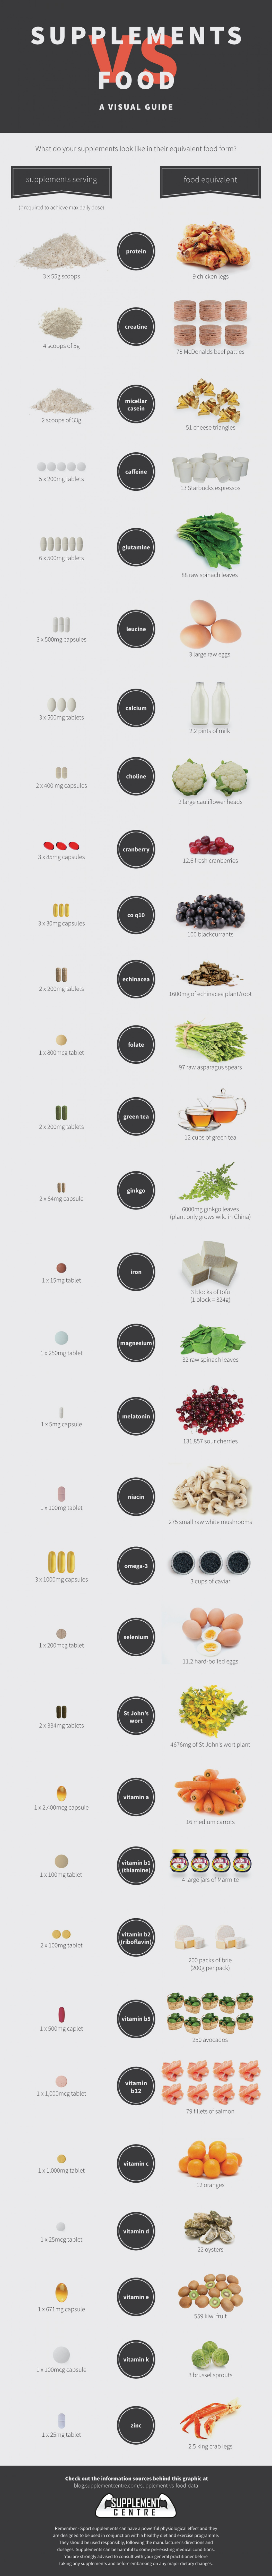 supplements-vs-food--a-visual-guide-infographic_52013223d9eee_w1500